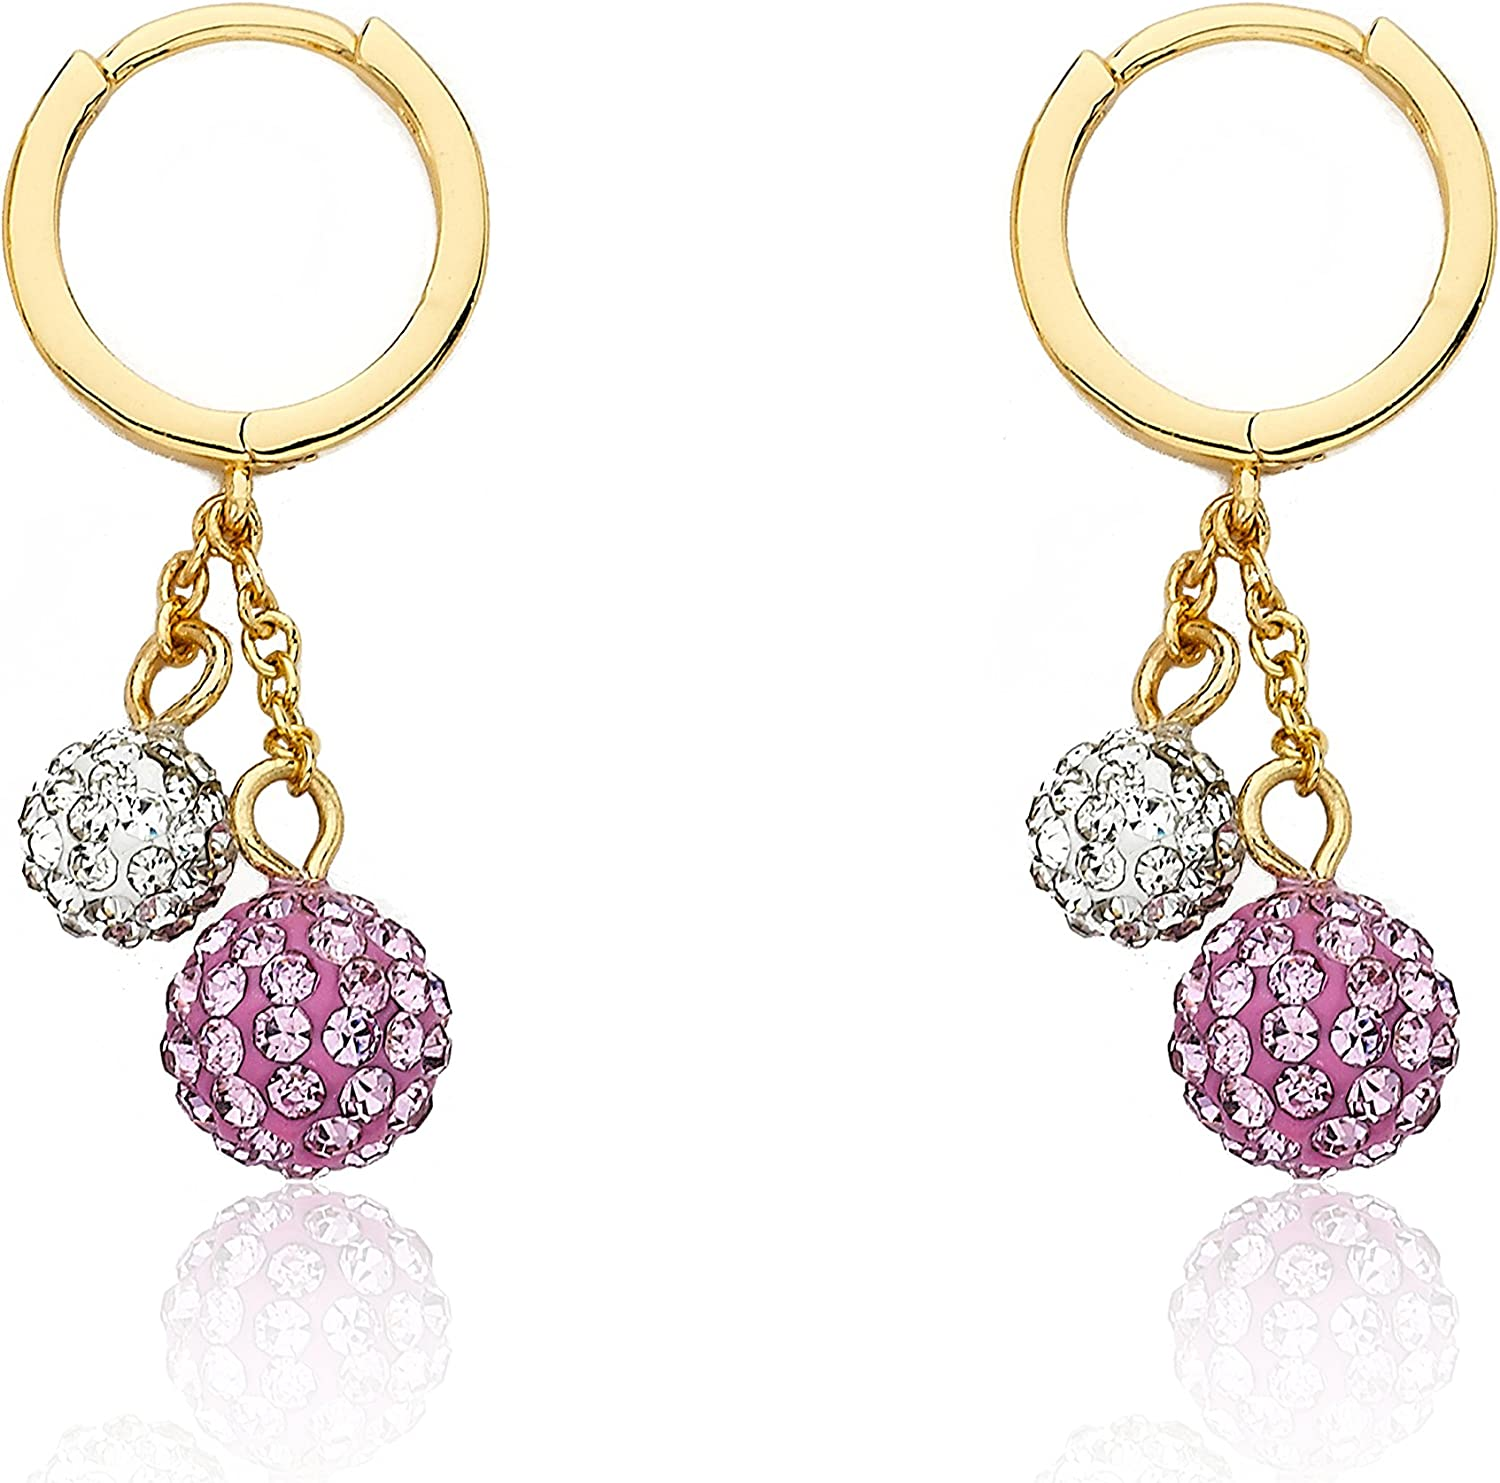 Molly Glitz Glitz Blitz 14K Gold Plated Huggy Earring Accented With Crystal Balls Lariat Dangle